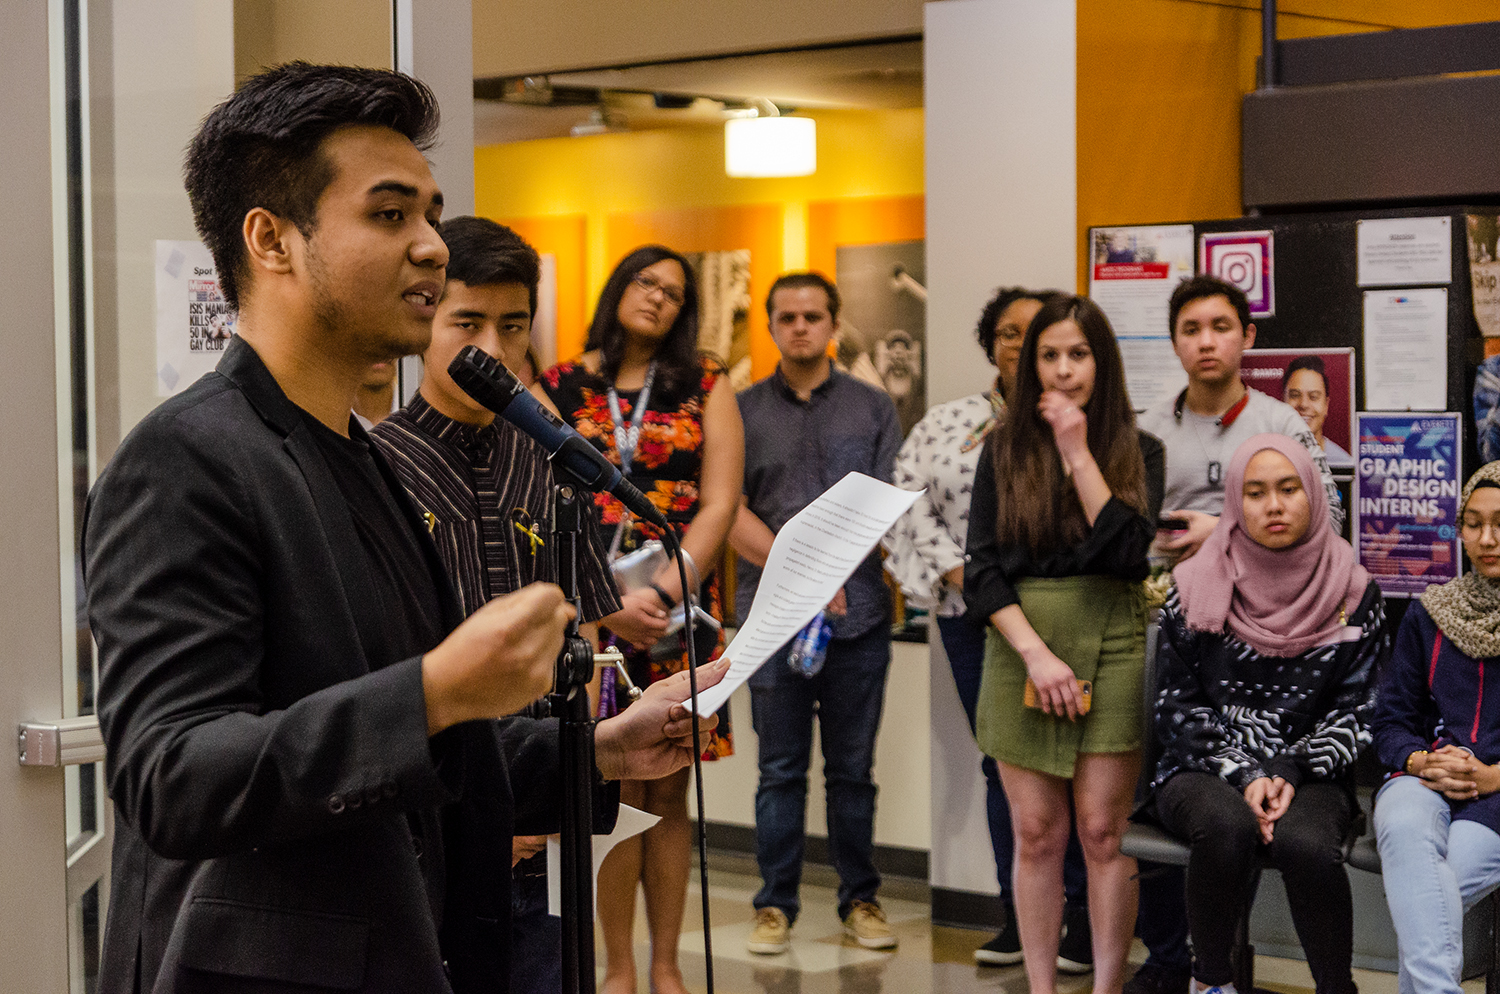 Ahmad+Zaferi%2C+second-year+EvCC+student+and+MSA+president%2C+gave+the+speech+at+the+Christchurch+solidarity+event+on+Wednesday%2C+March+20%2C+2019.